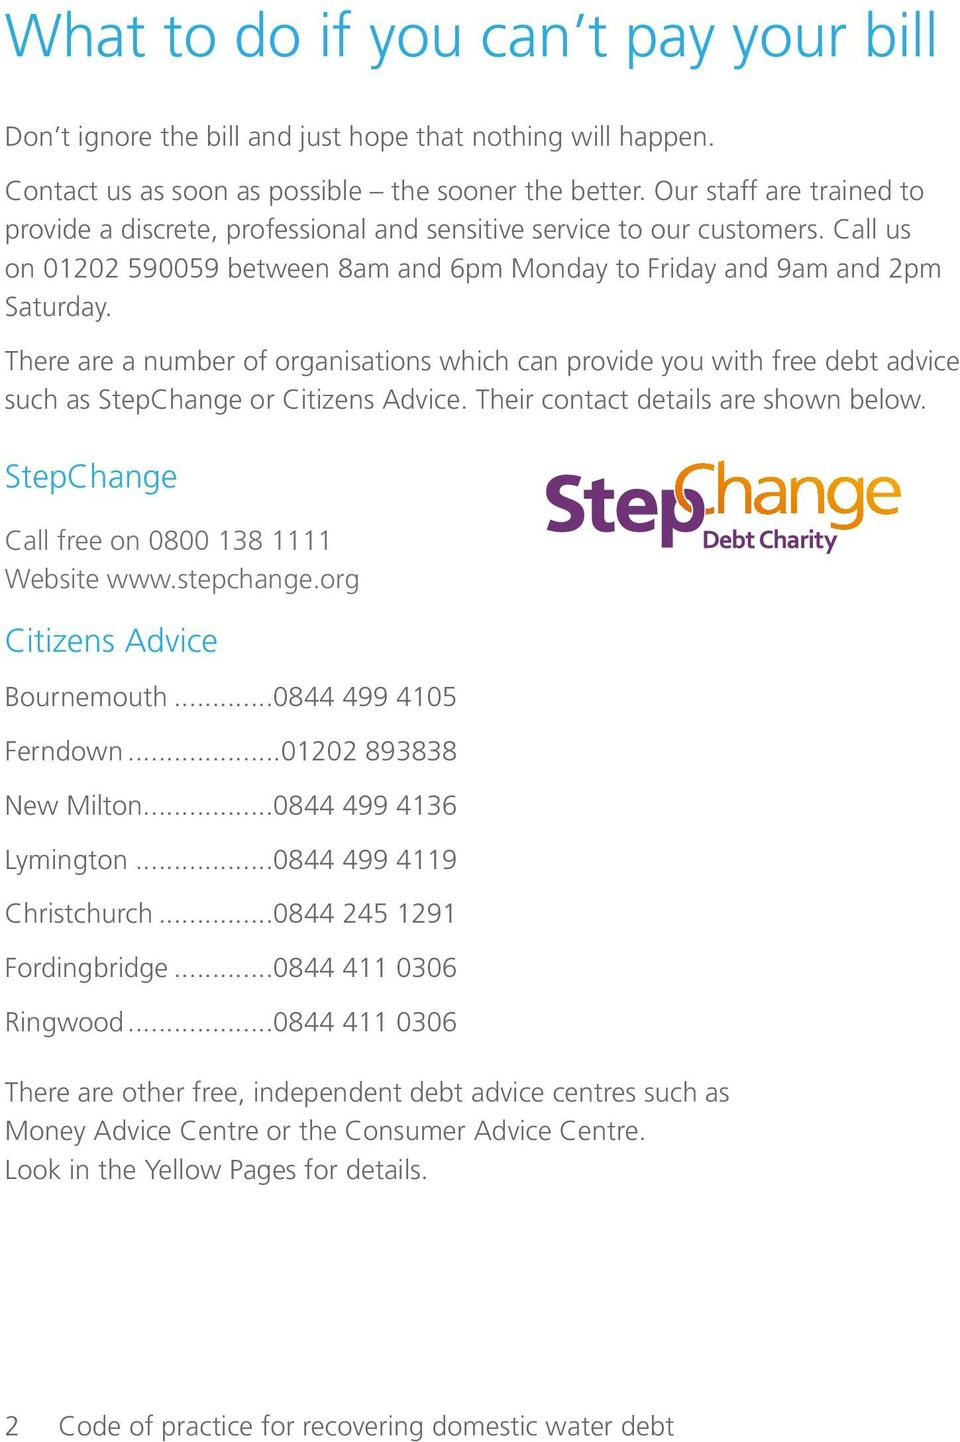 There are a number of organisations which can provide you with free debt advice such as StepChange or Citizens Advice. Their contact details are shown below.